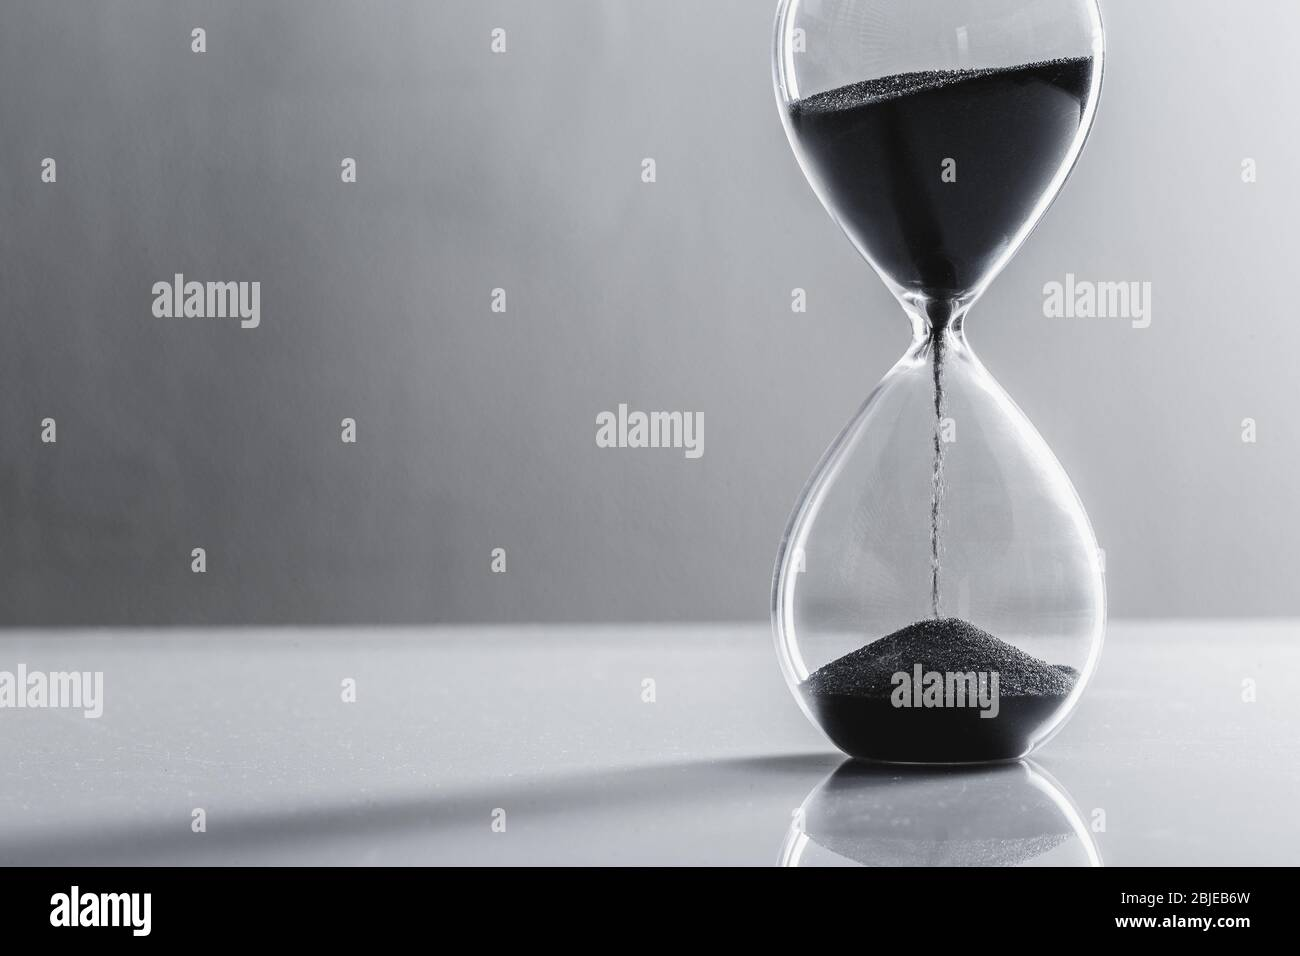 Close up hourglass on table. Close up. Stock Photo